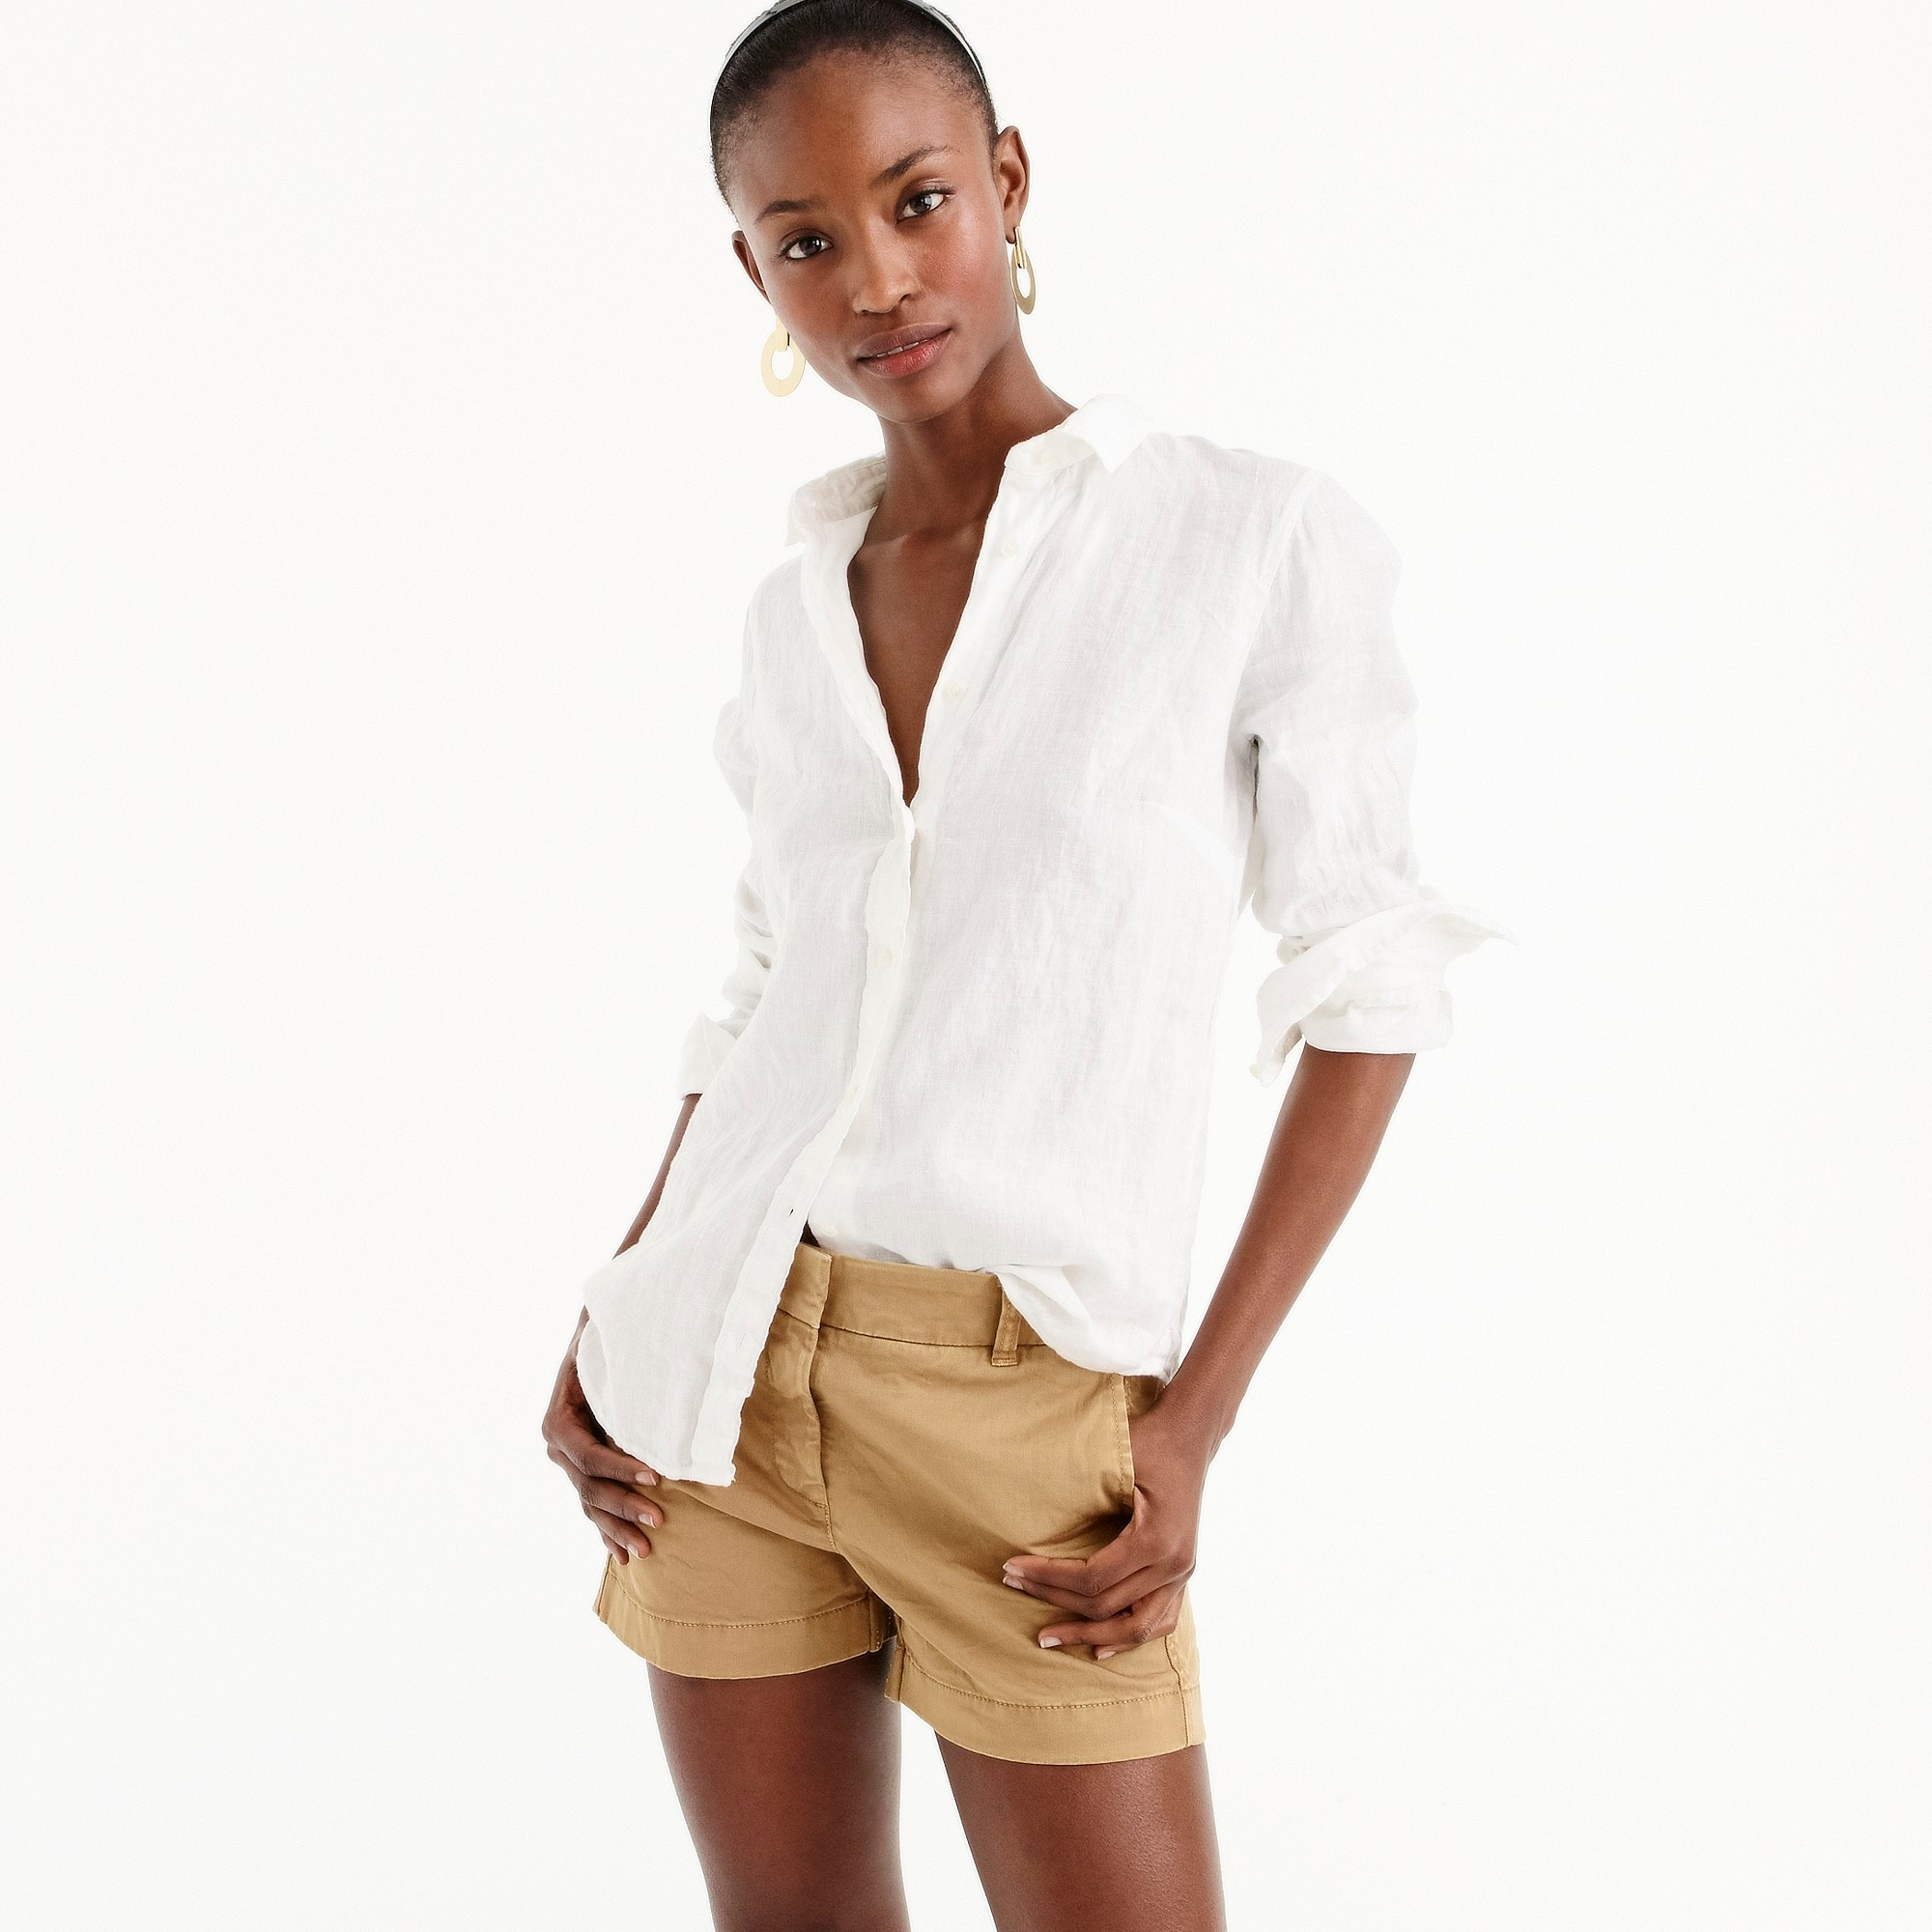 Slim perfect shirt in piece-dyed Irish linen women new arrivals c